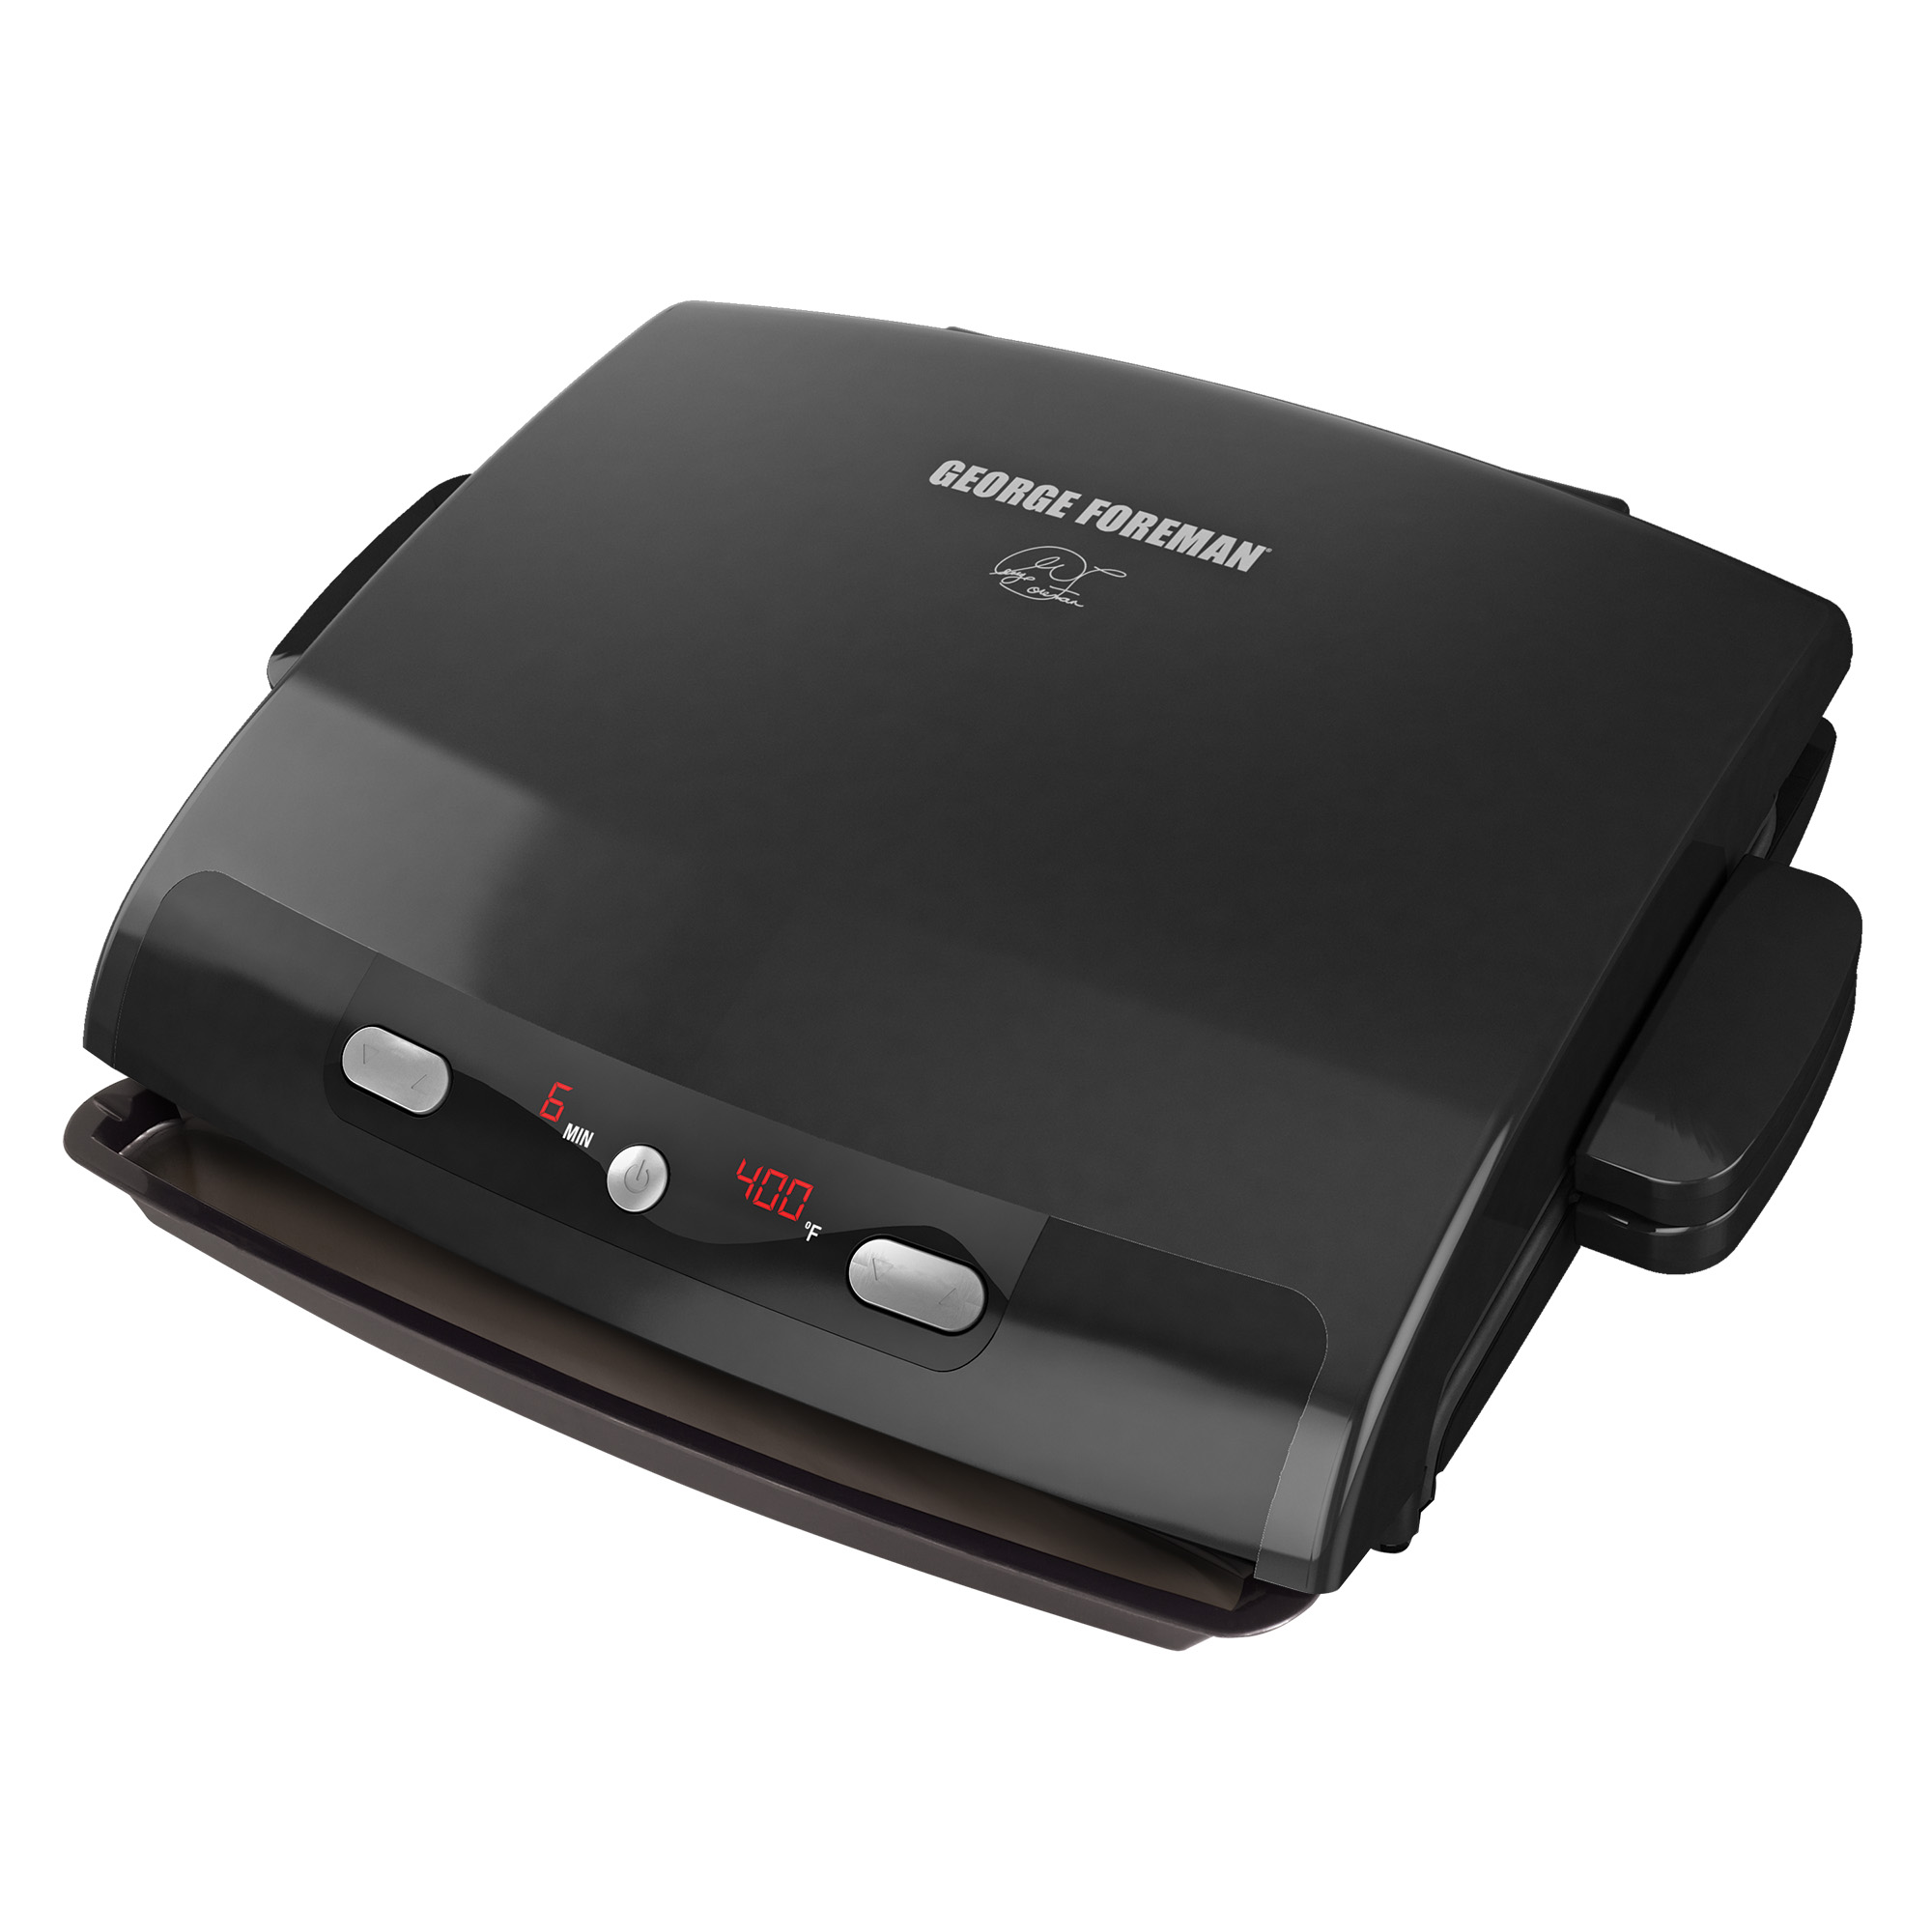 George Foreman 6-Serving Removable Plate & Panini Grill with Digital Temperature, Black, GRP99BLK